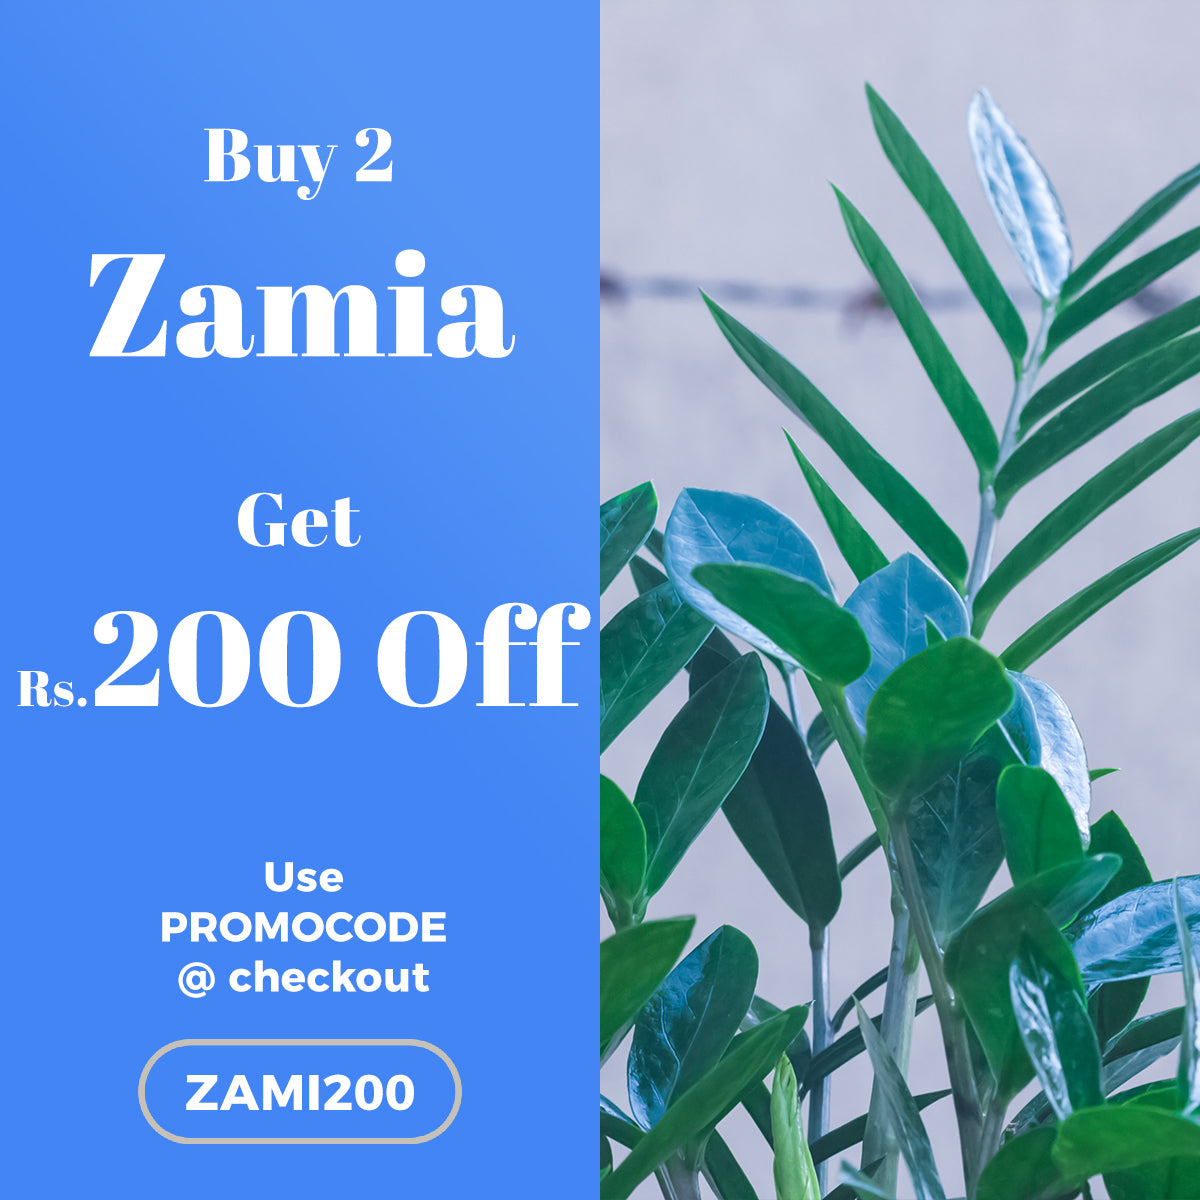 Buy 2 Zamia Plant and get Rs.200 OFF